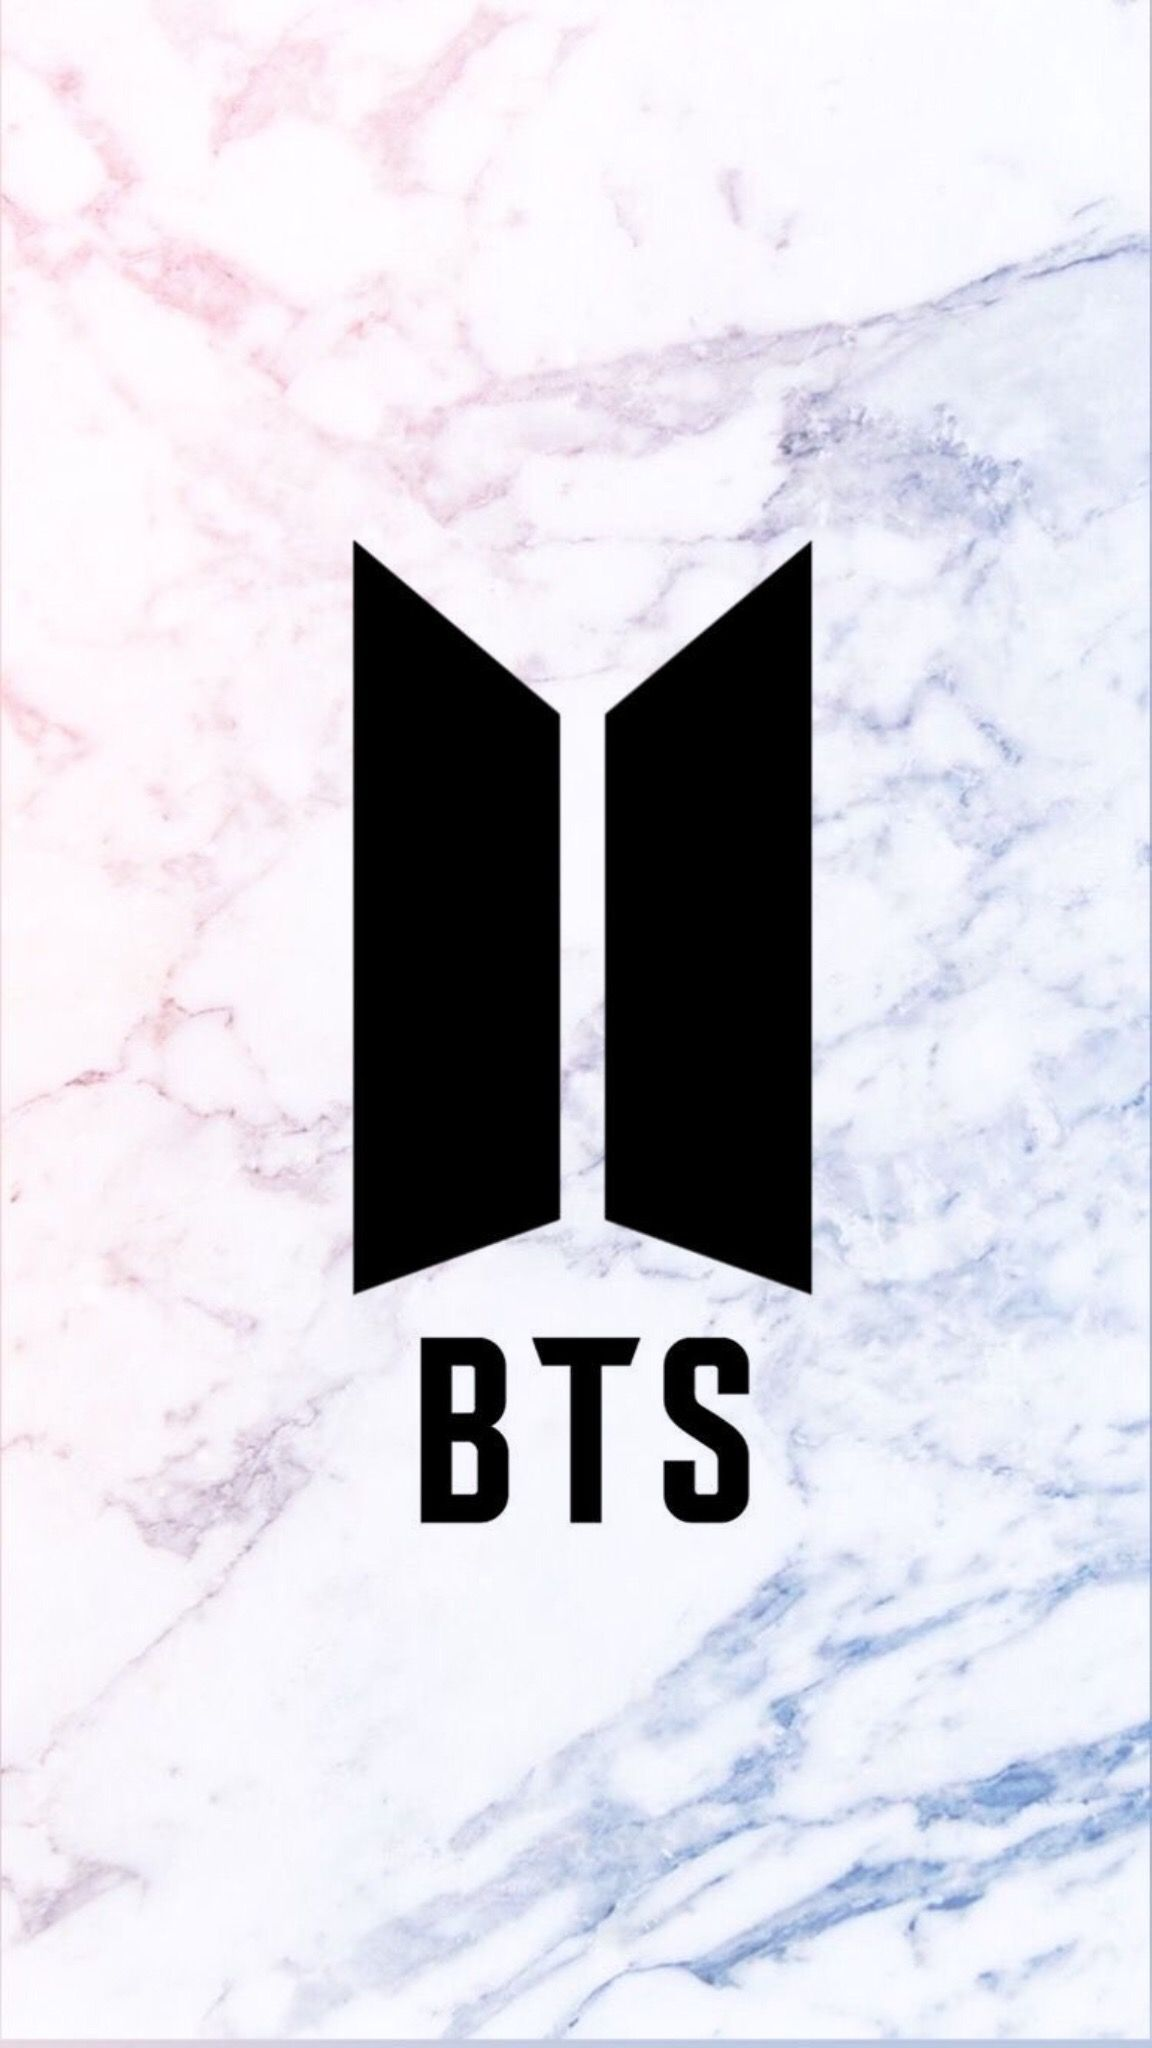 New Bts Logo Wallpapers Top Free New Bts Logo Backgrounds Wallpaperaccess